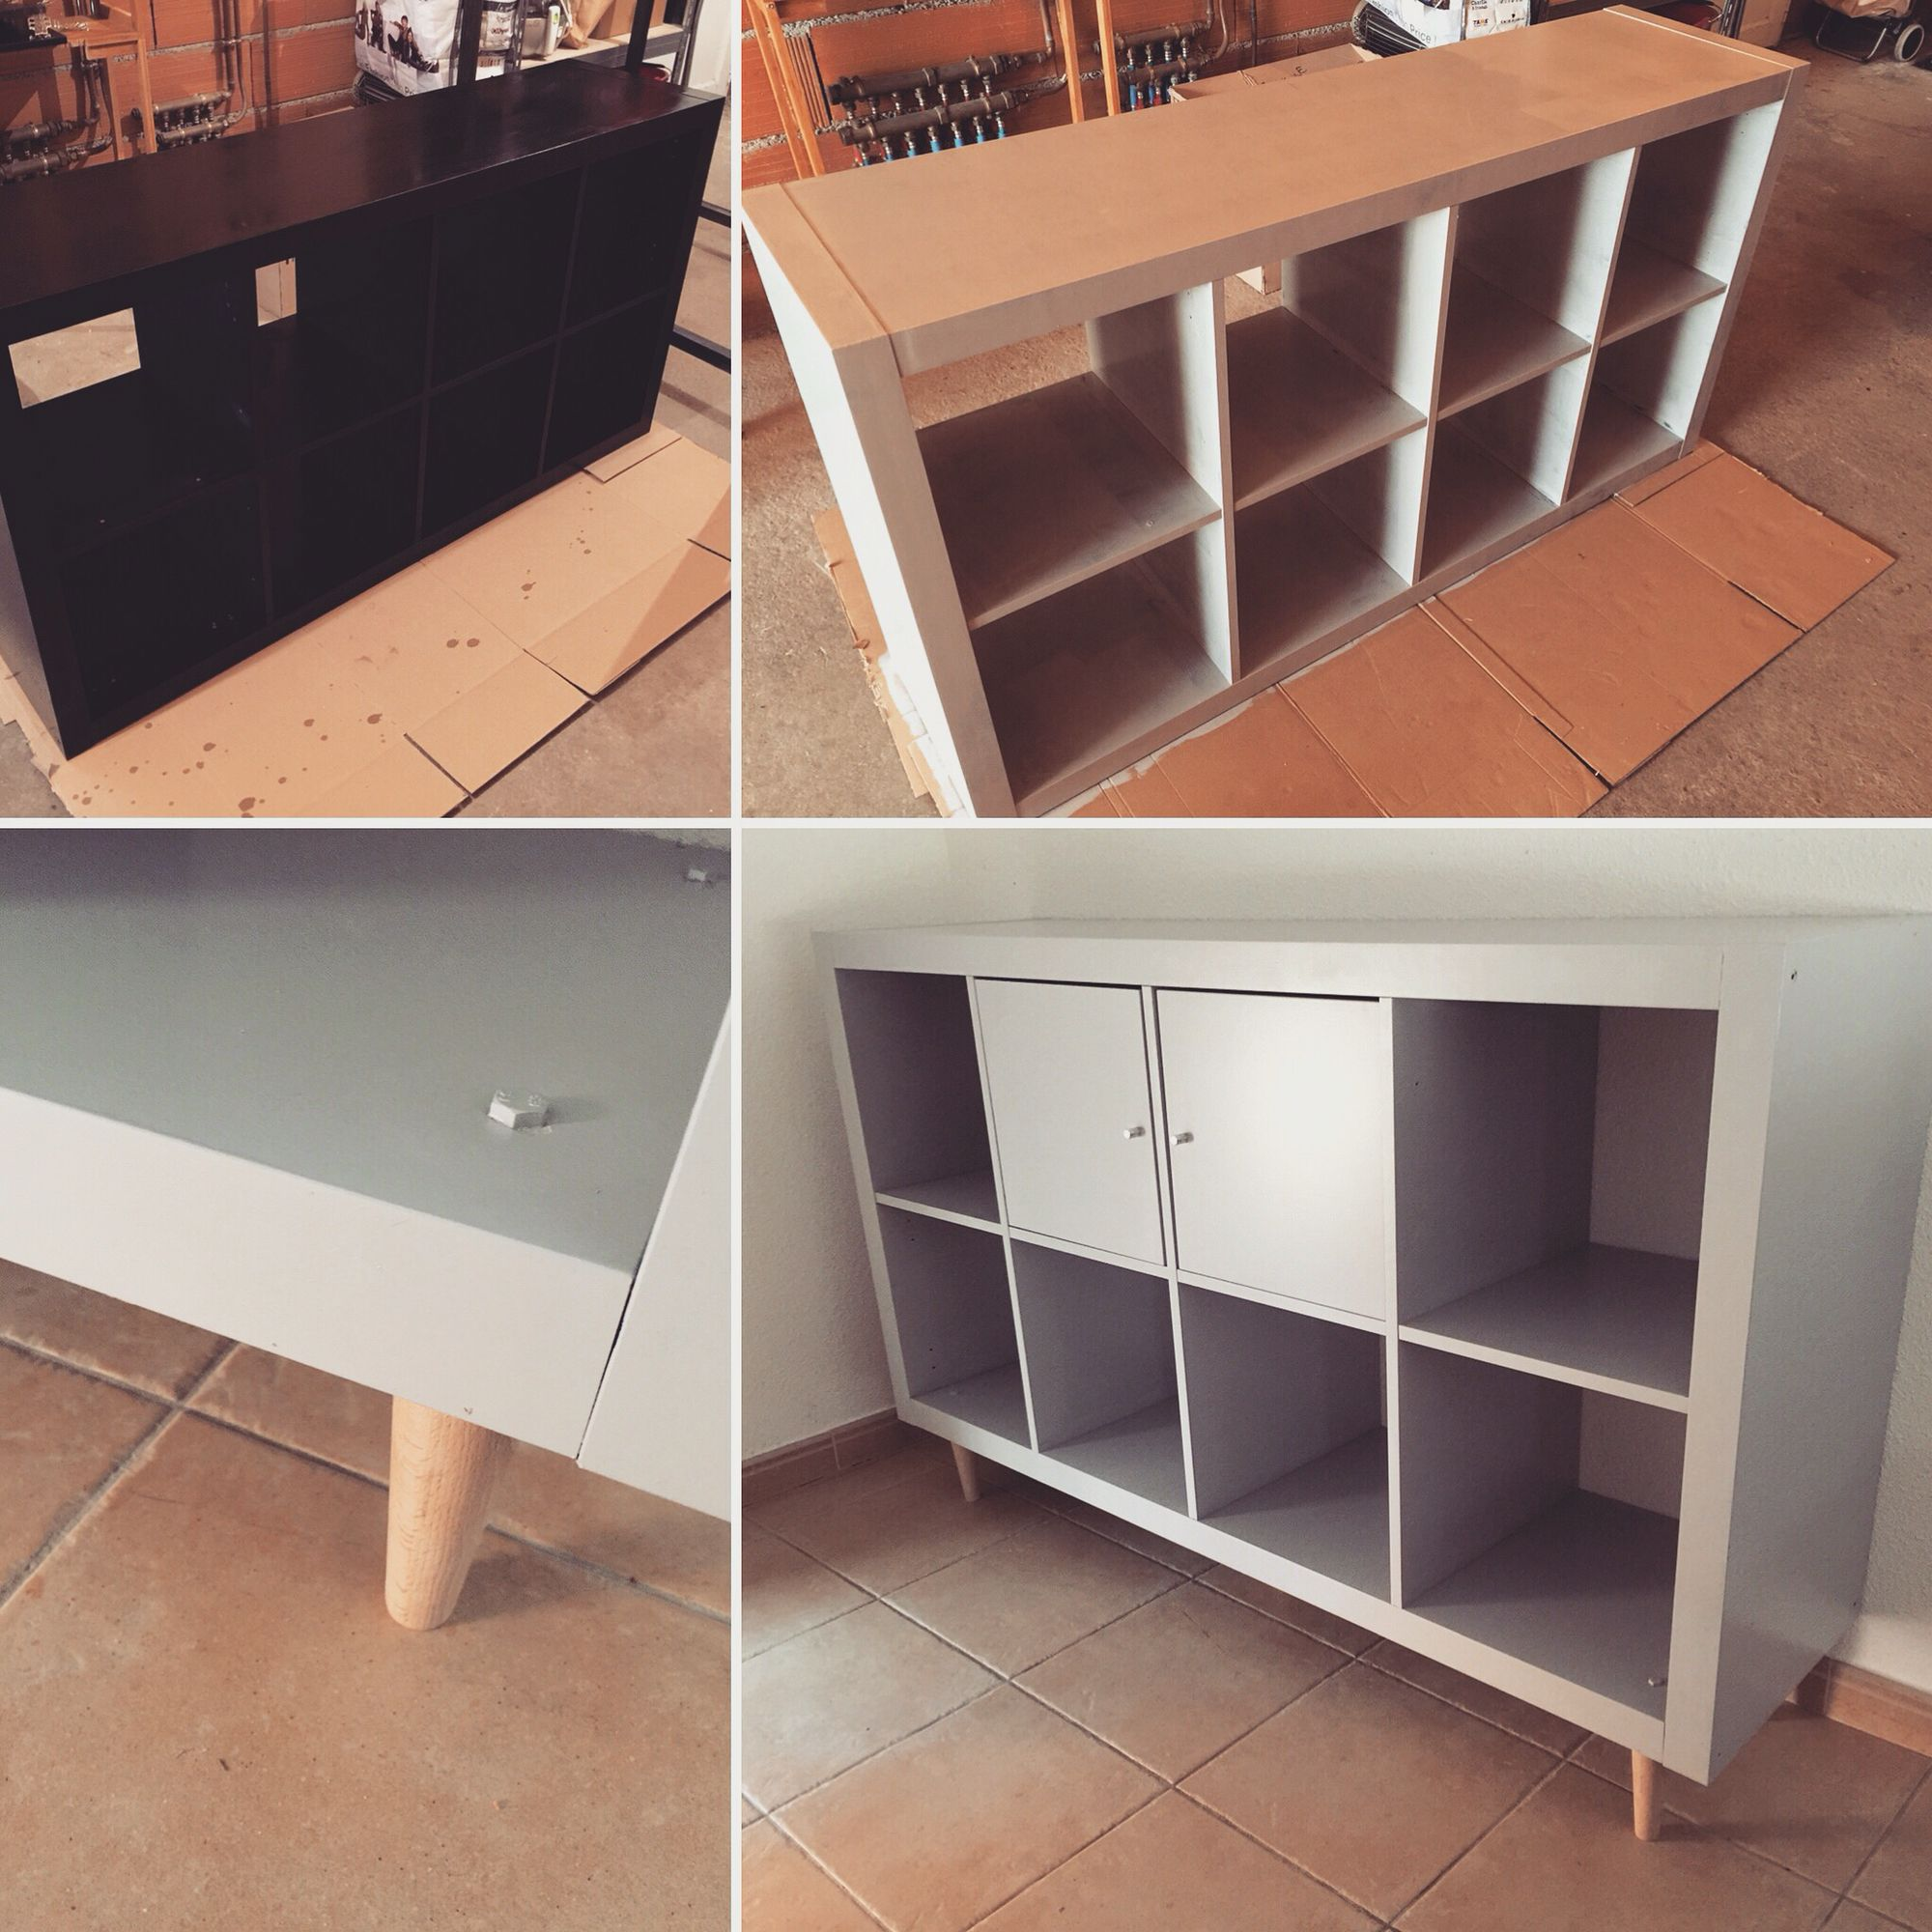 Customiser Un Meuble Ikea Kallax Ou Expedit Creation By Delph Ine Customiser Meuble Ikea Meuble Deco Meubles Ikea